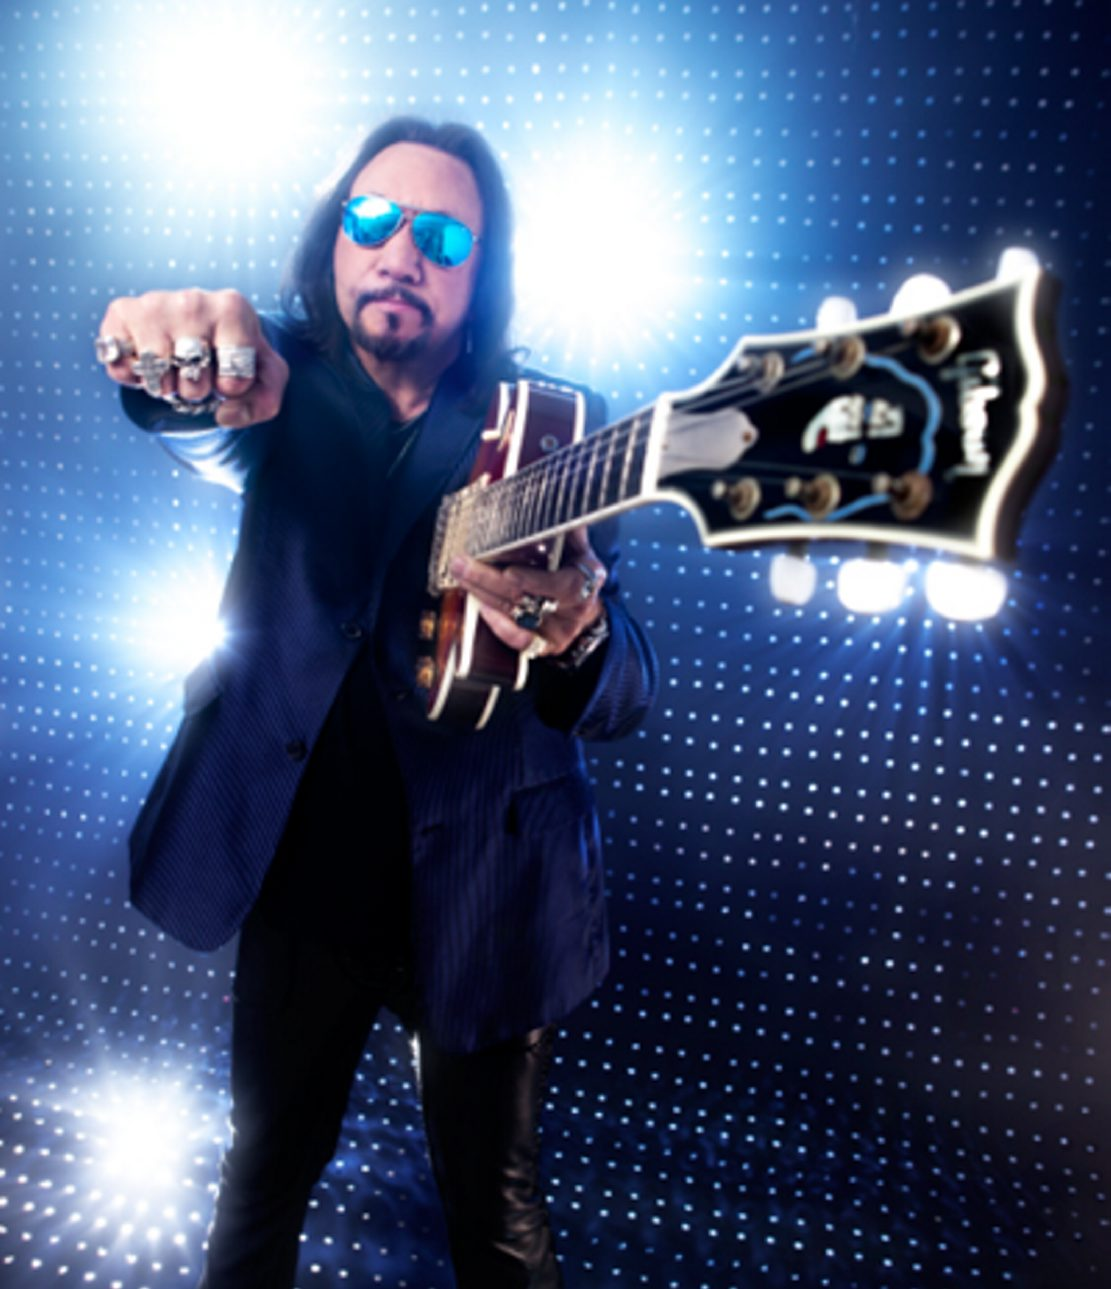 Ace Frehley will play UB's Center for the Arts on Sept. 21.